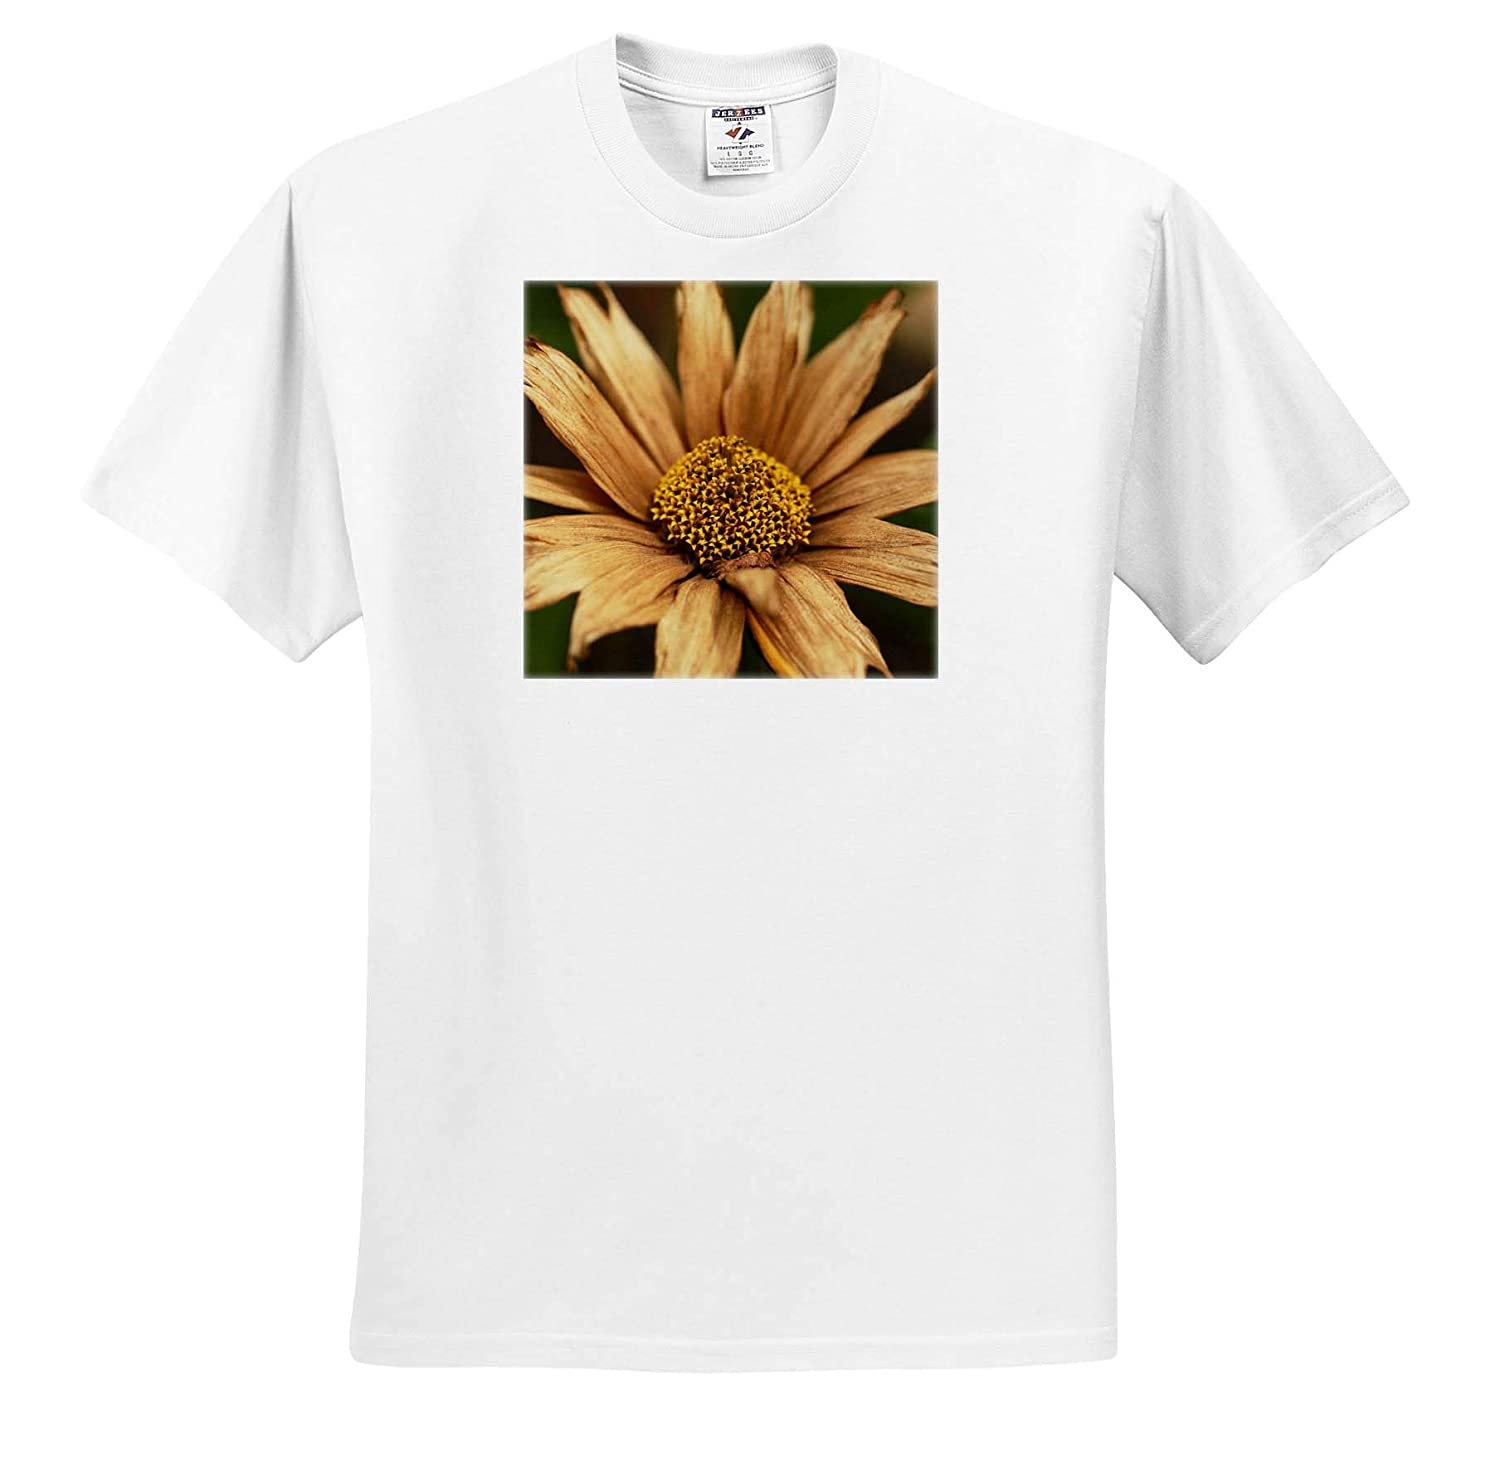 3dRose Stamp City Flowers Macro Photograph of a Dried Maximilian Sunflower - Adult T-Shirt XL ts/_320140